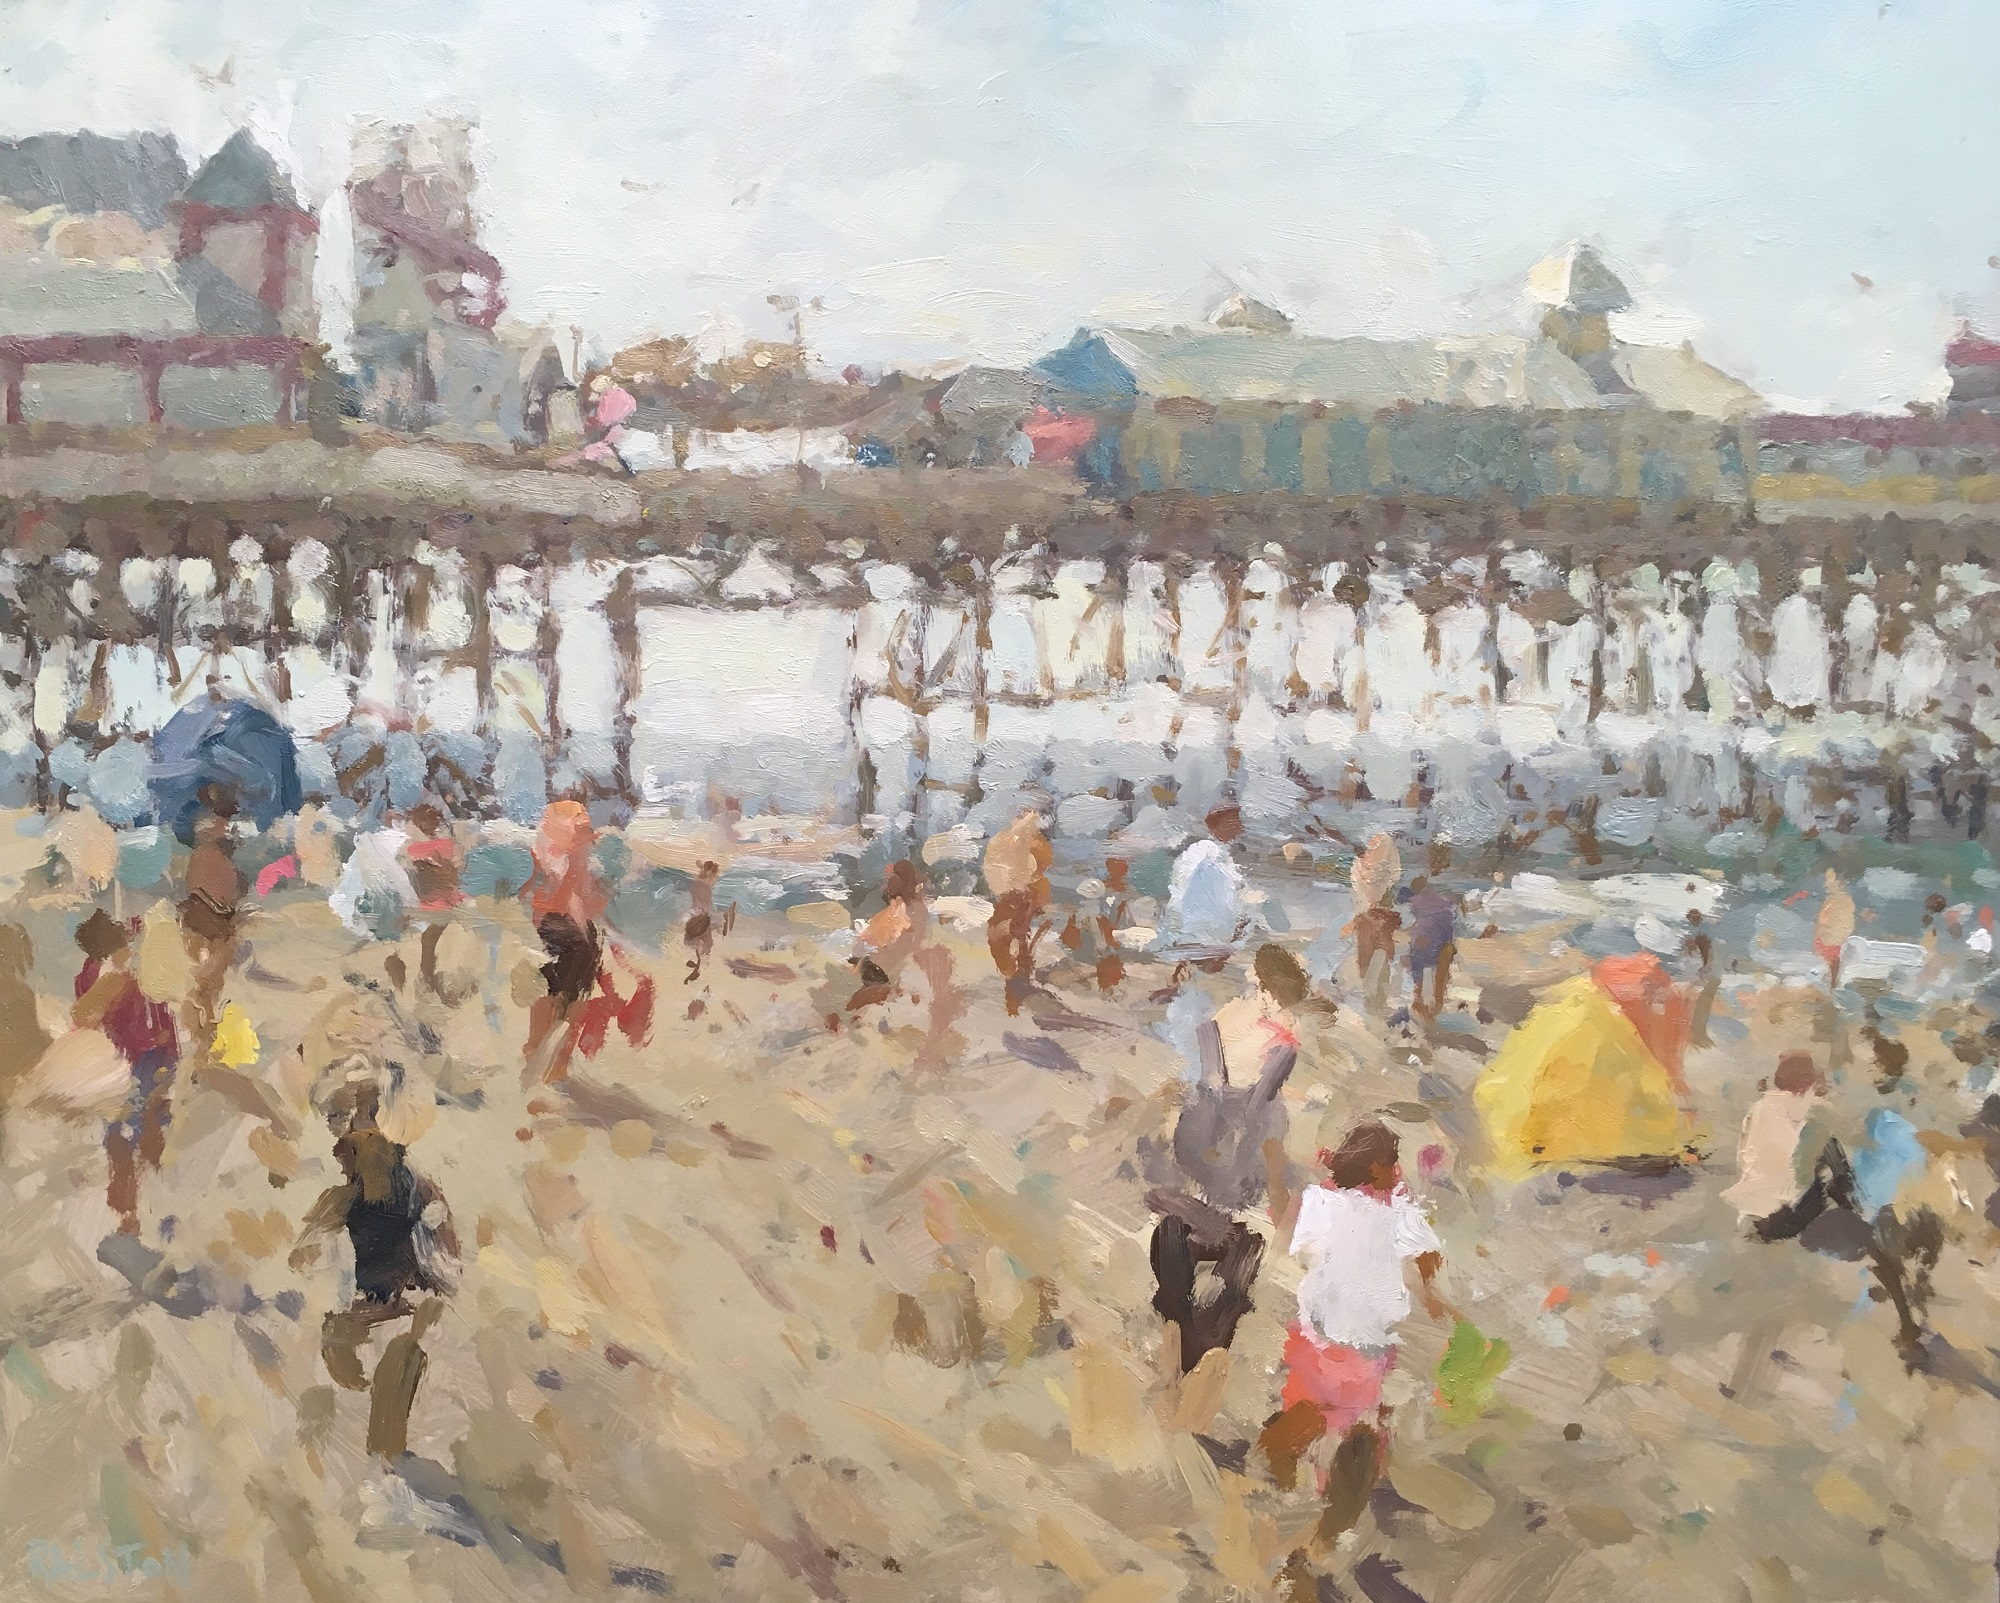 Summer Holidays, 2019 Adam Ralston oil on board, 40.6 x 50.8 cm